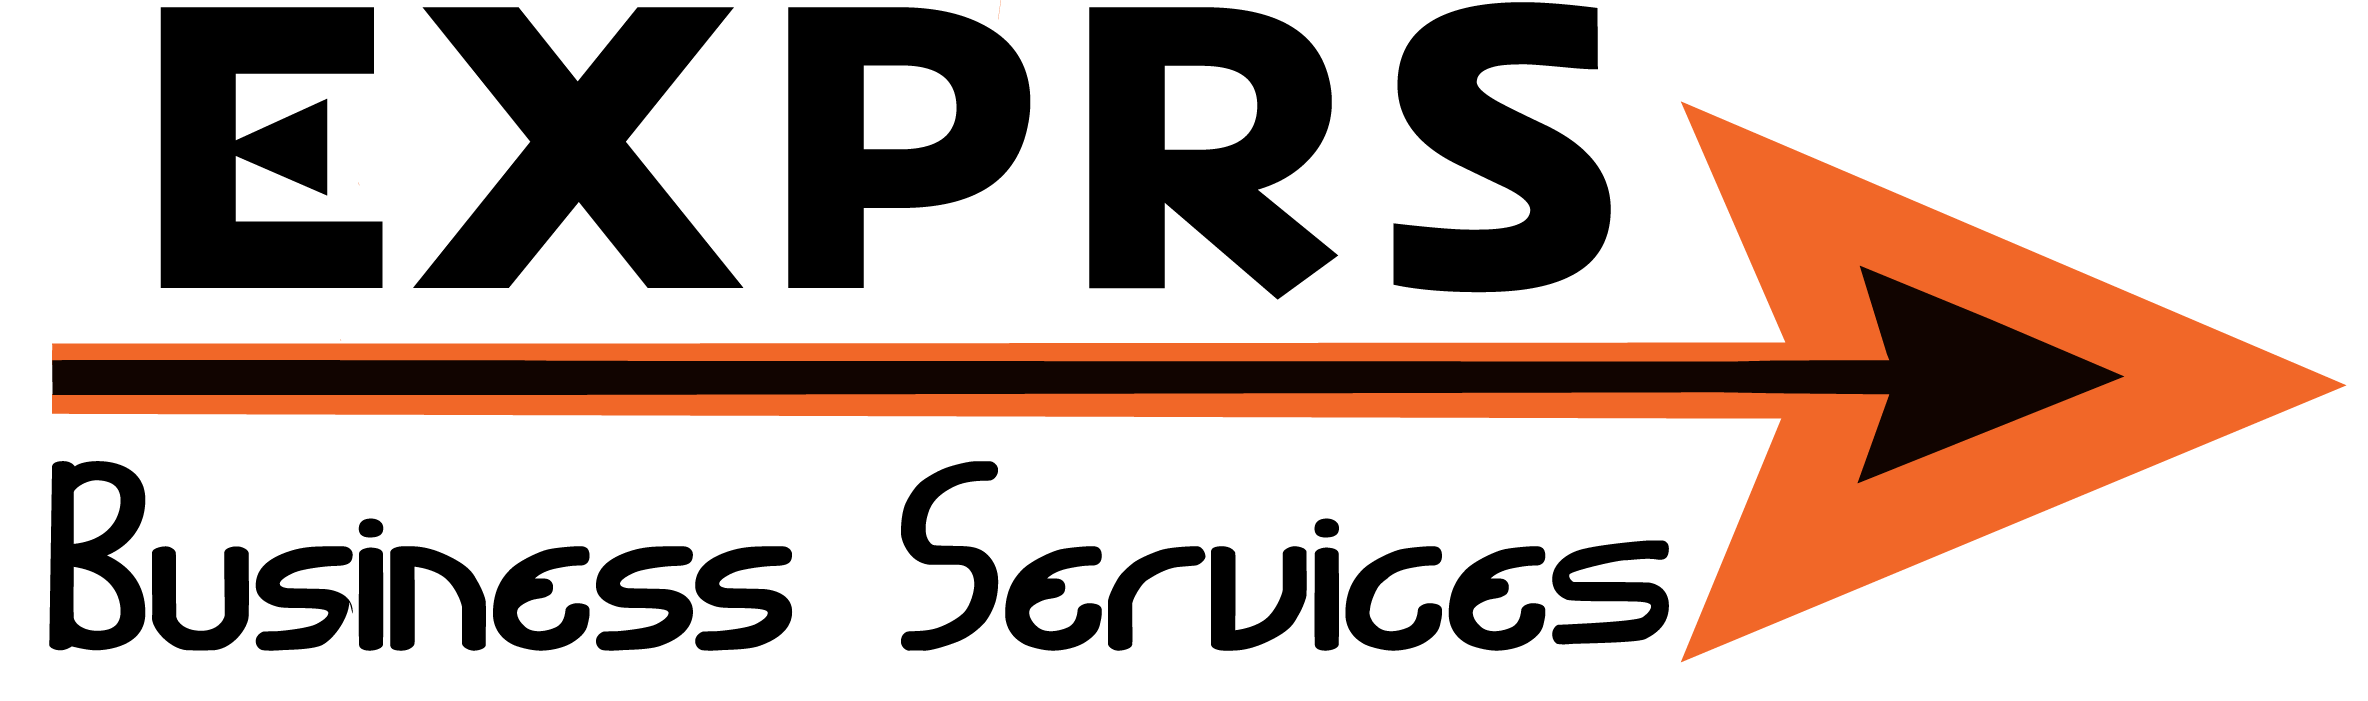 eXPRS Business Services Retina Logo